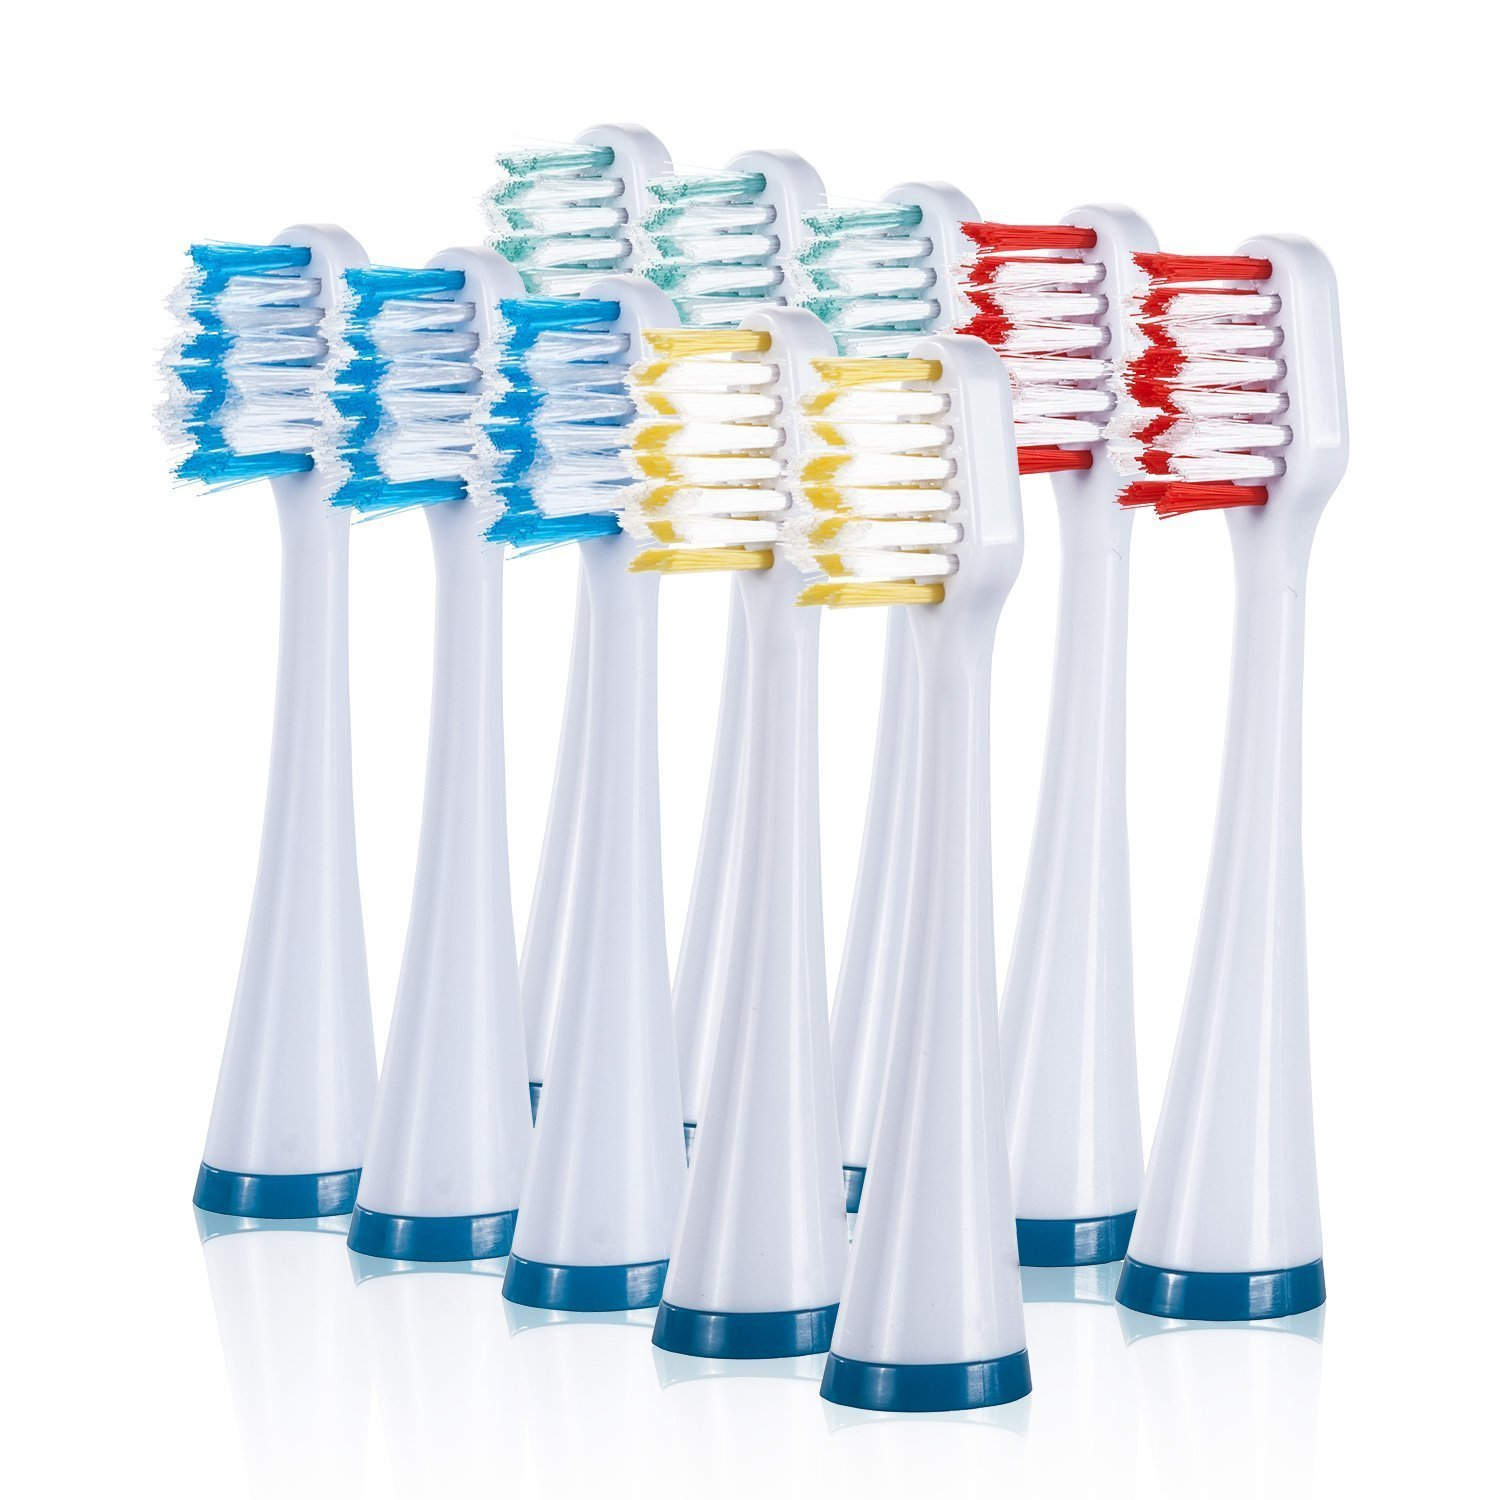 Modeled after the round shape of professional dental cleaning tools, Oral-B replacement brush heads work with any Oral-B brand electric toothbrush, except pulsonic, to deliver a superior clean vs. a regular manual toothbrush.